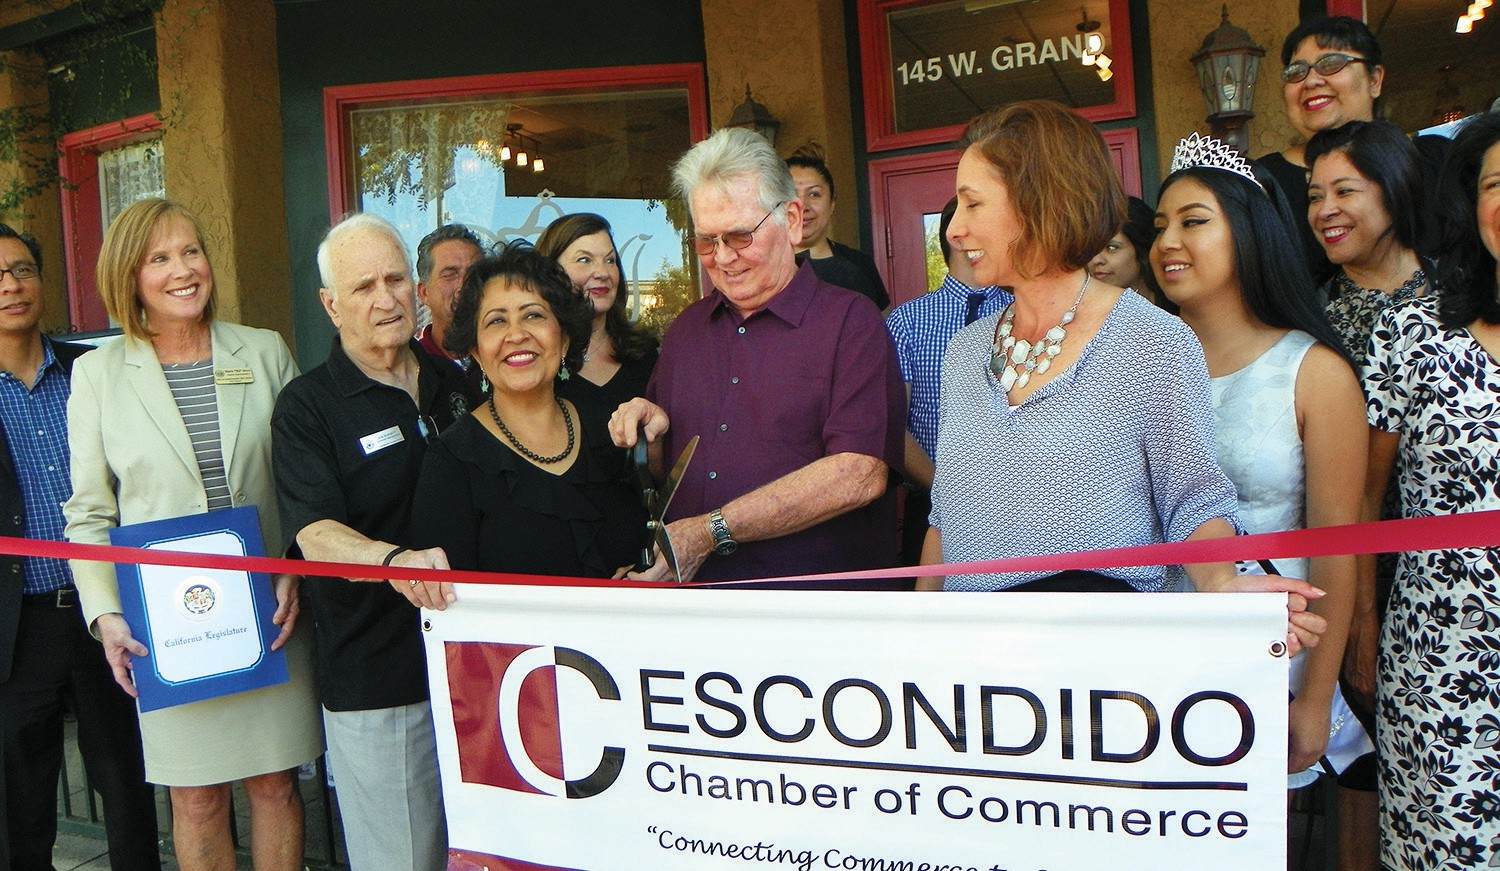 The official ribbon cutting, with Louisa Magoon (front) and many other VIPs from the Chamber joining in. They include (from left) Dr. Luis Ibarra, Marie Joyce from Assemblywoman Marie Waldron's office, Don Burgett from Congressman Duncan Hunter's office, owner Louisa Magoon and Bob Magoon, Rorie Johnston, chief executive office of the Chamber, Miss Escondido Valeria Hernandez (behind Johnston), Rosa Ruiz, Joe Coyle, Chamber Board Chairman Linda Bailey.